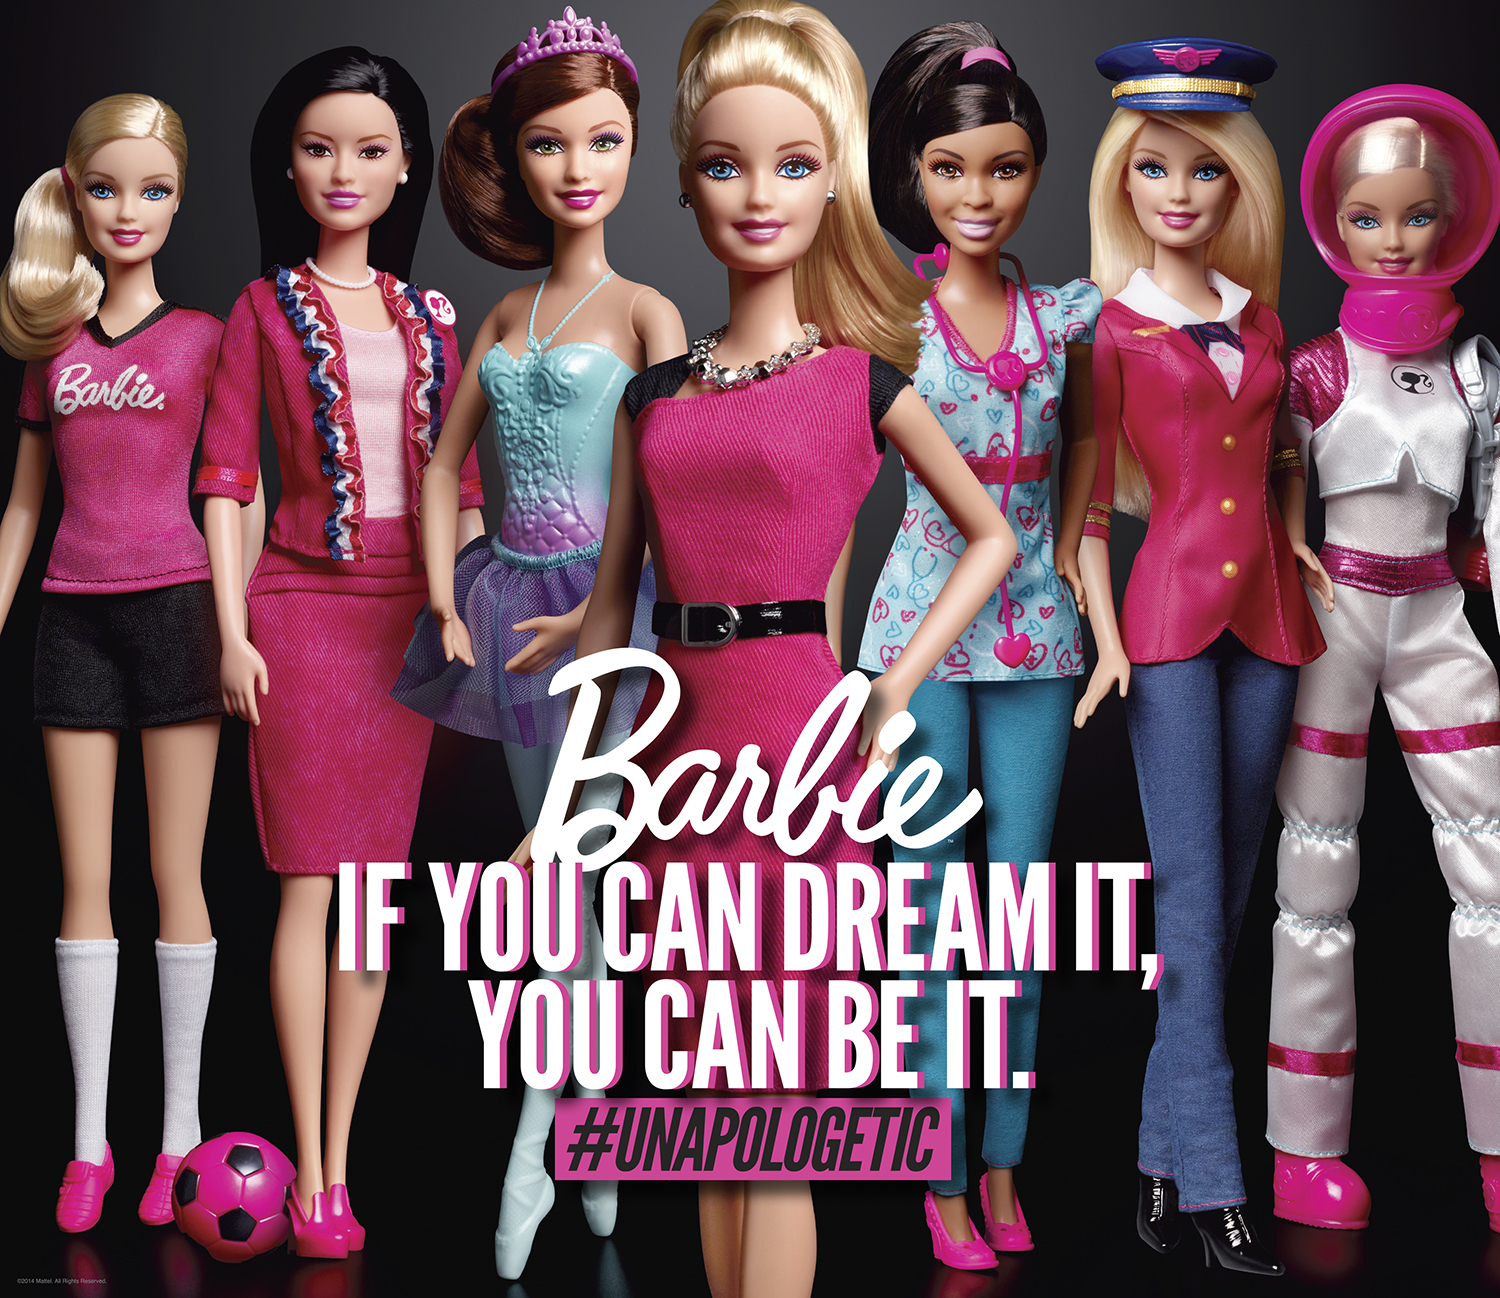 With 150+ careers, Barbie® has always encouraged girls that if you can dream it, you can be it. With the launch of Entrepreneur Barbie®, available now, she is blazing trails along with other female leaders who are proud to be the boss. (Photo: Business Wire)